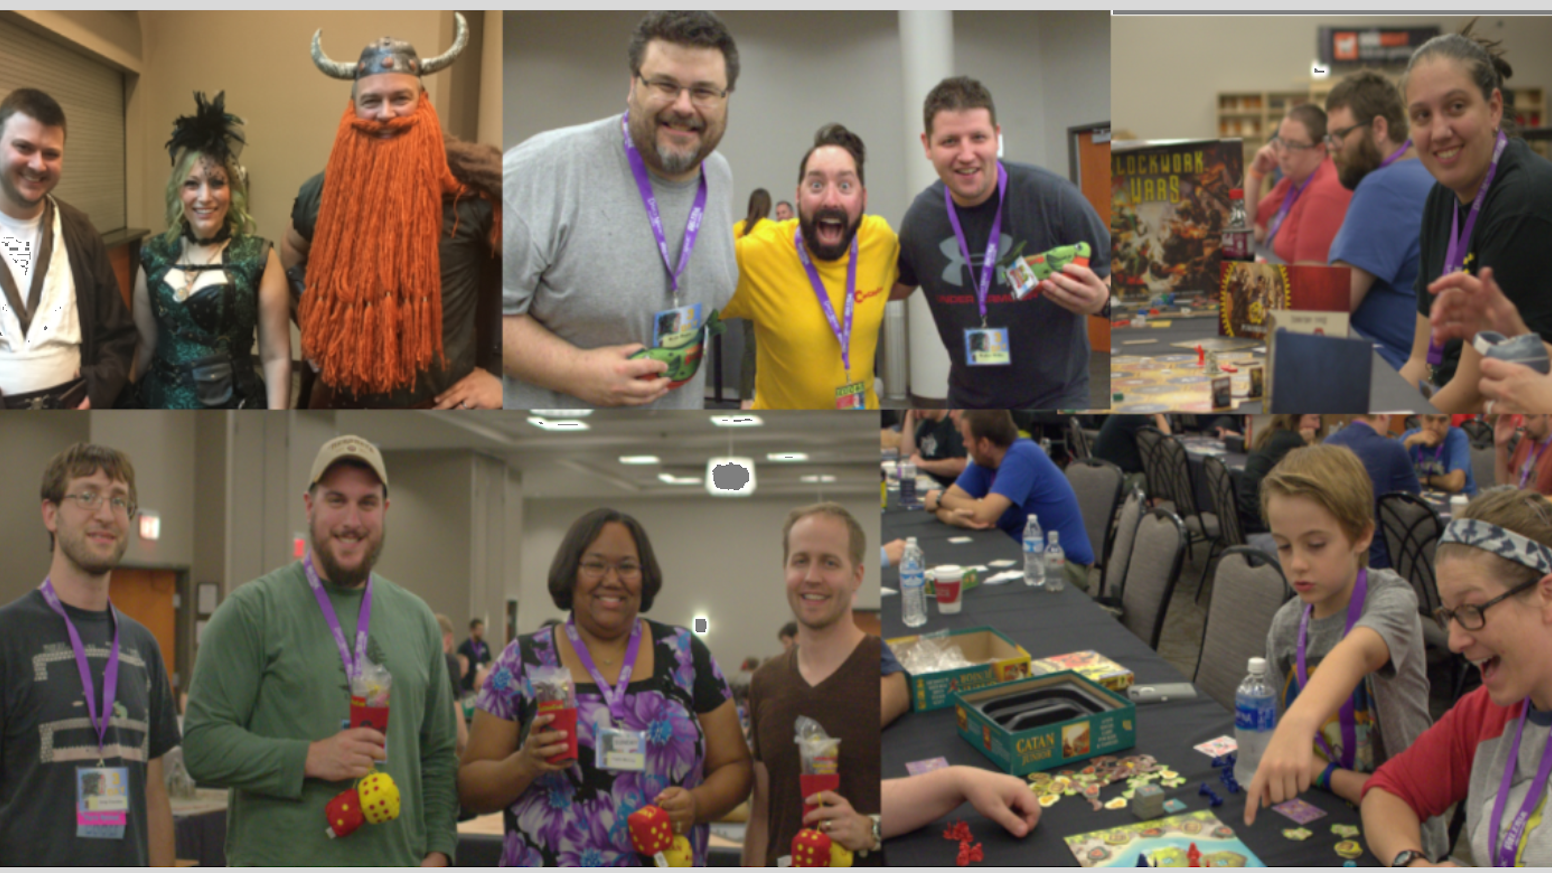 CinCityCon Boardgaming Convention 2018 Oct  12 to 14, 2018 by Greg